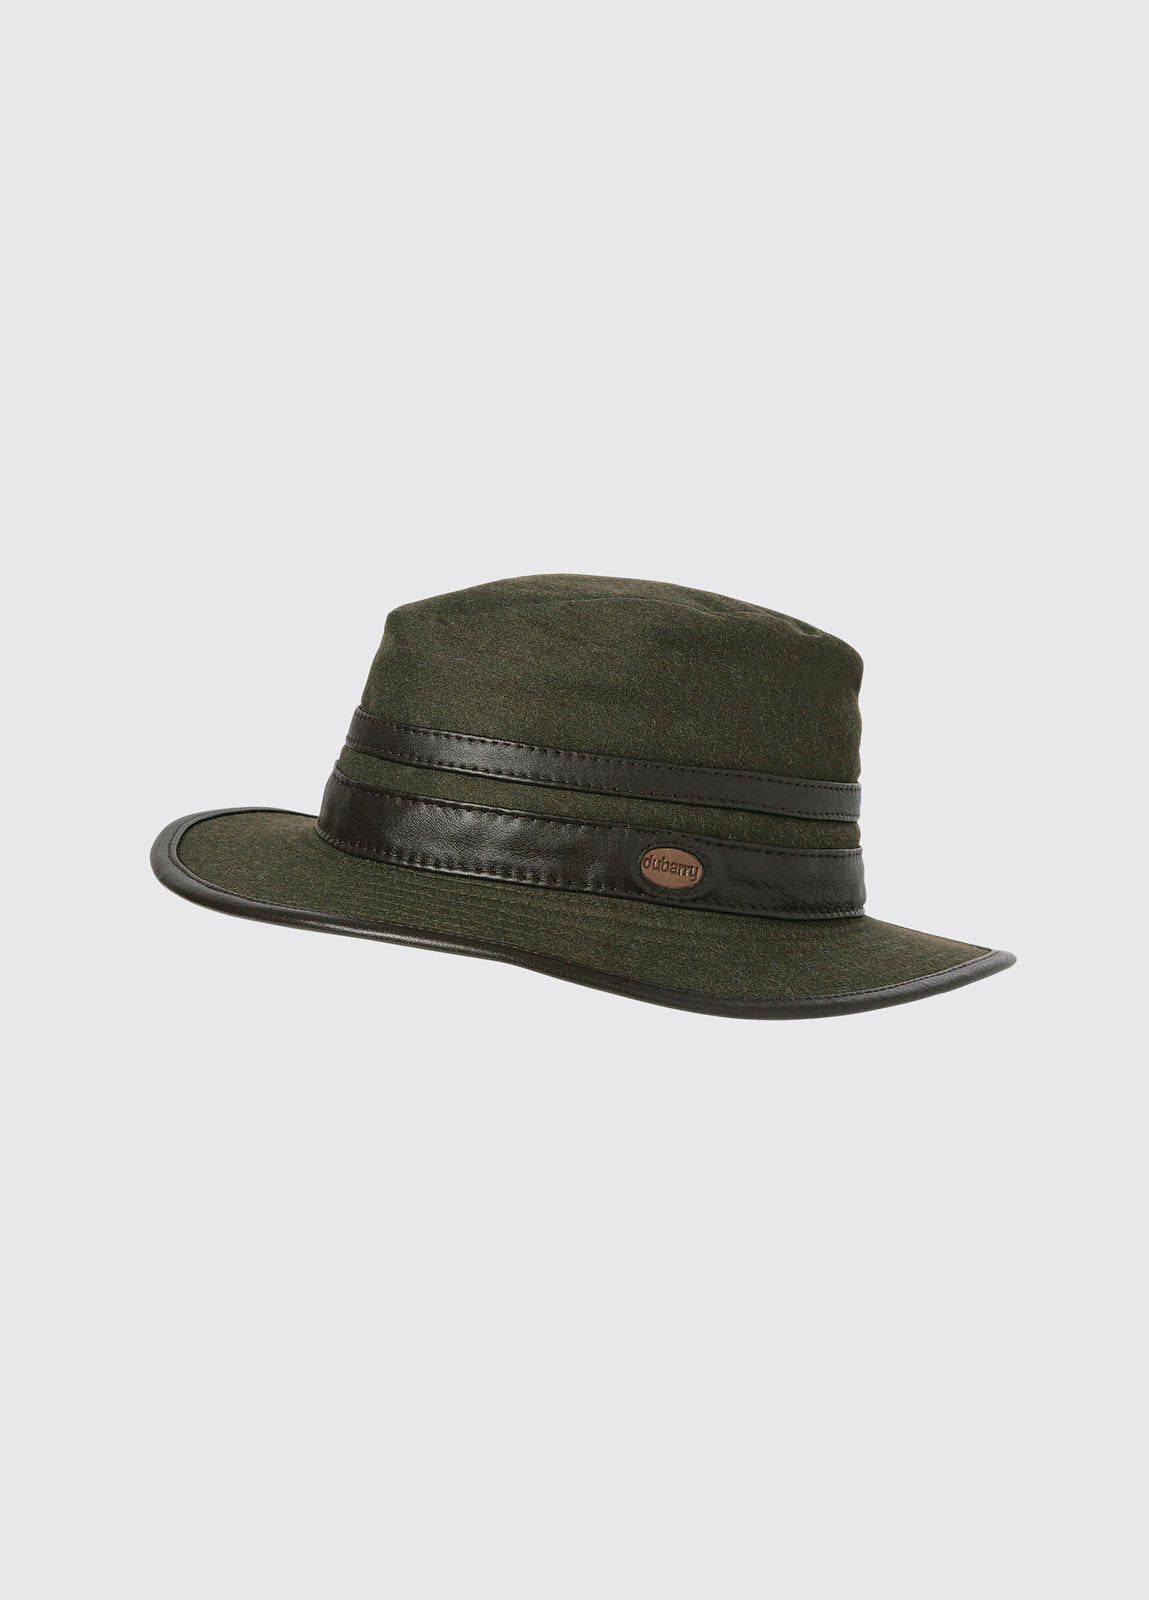 Dubarry Ladies Butler Hat - Olive